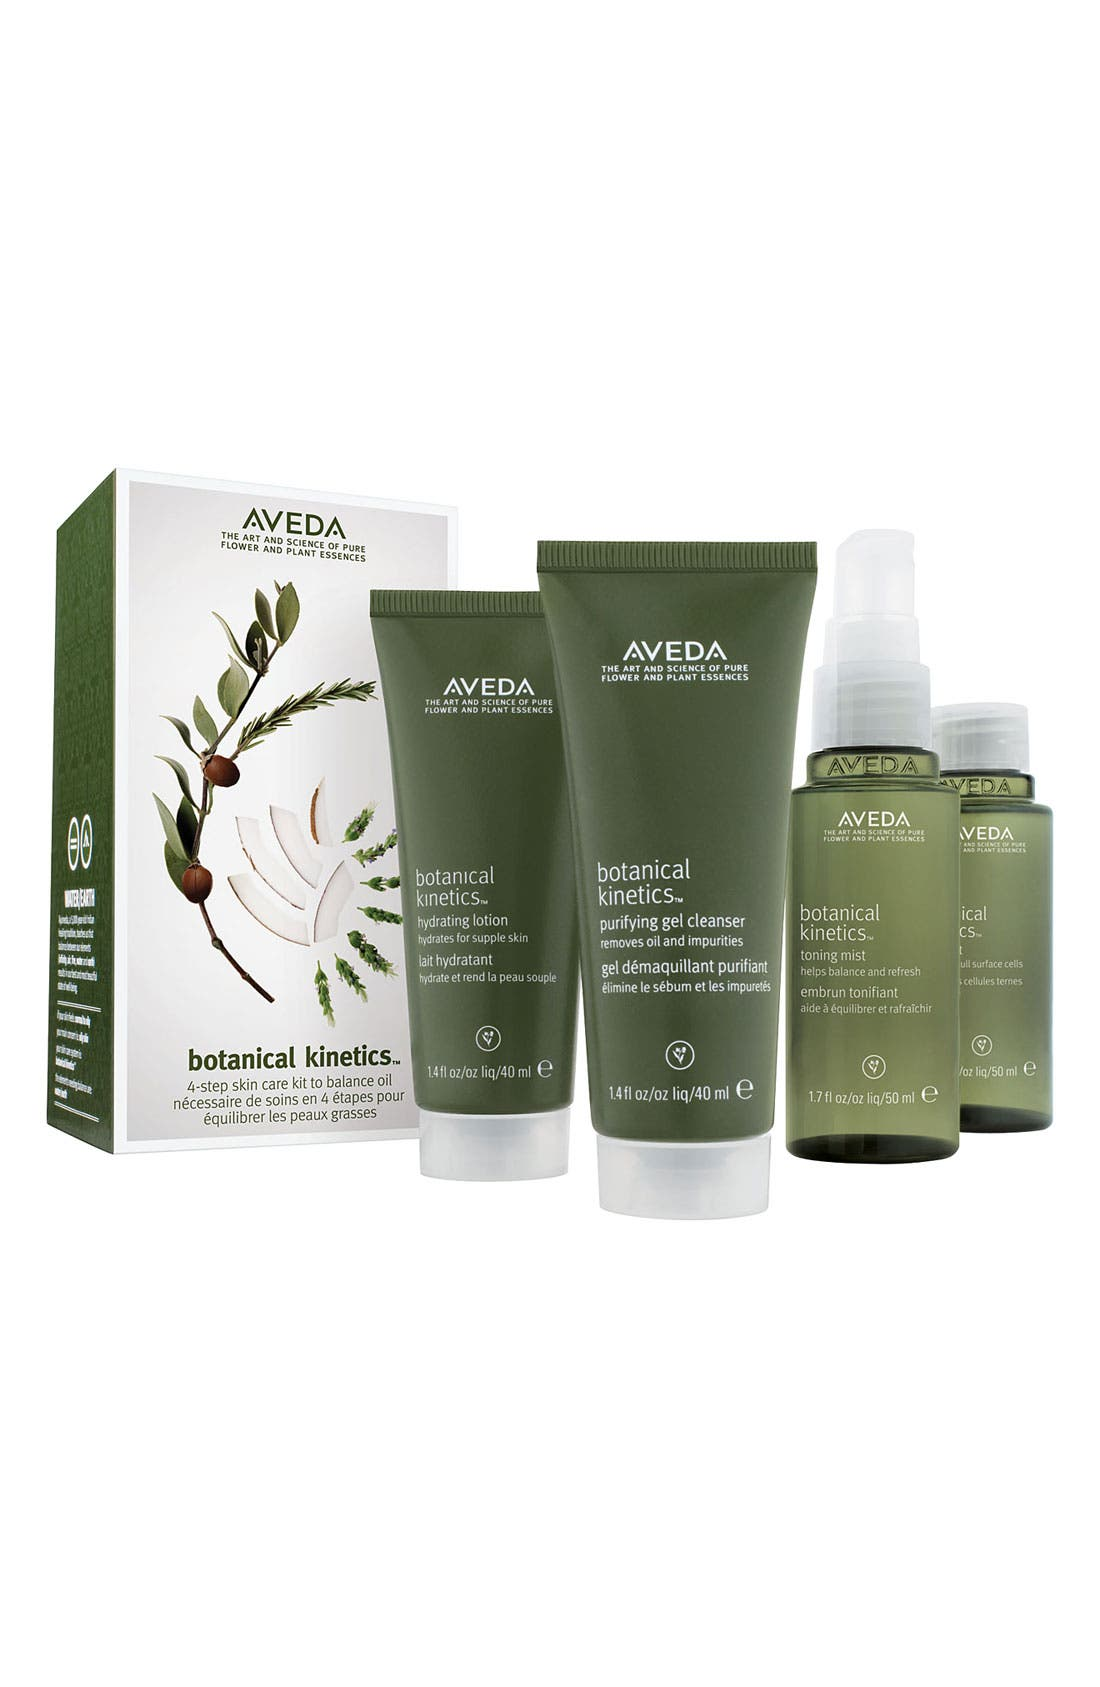 Aveda 'botanical kinetics™' Skincare Starter Set (Oily/Normal)